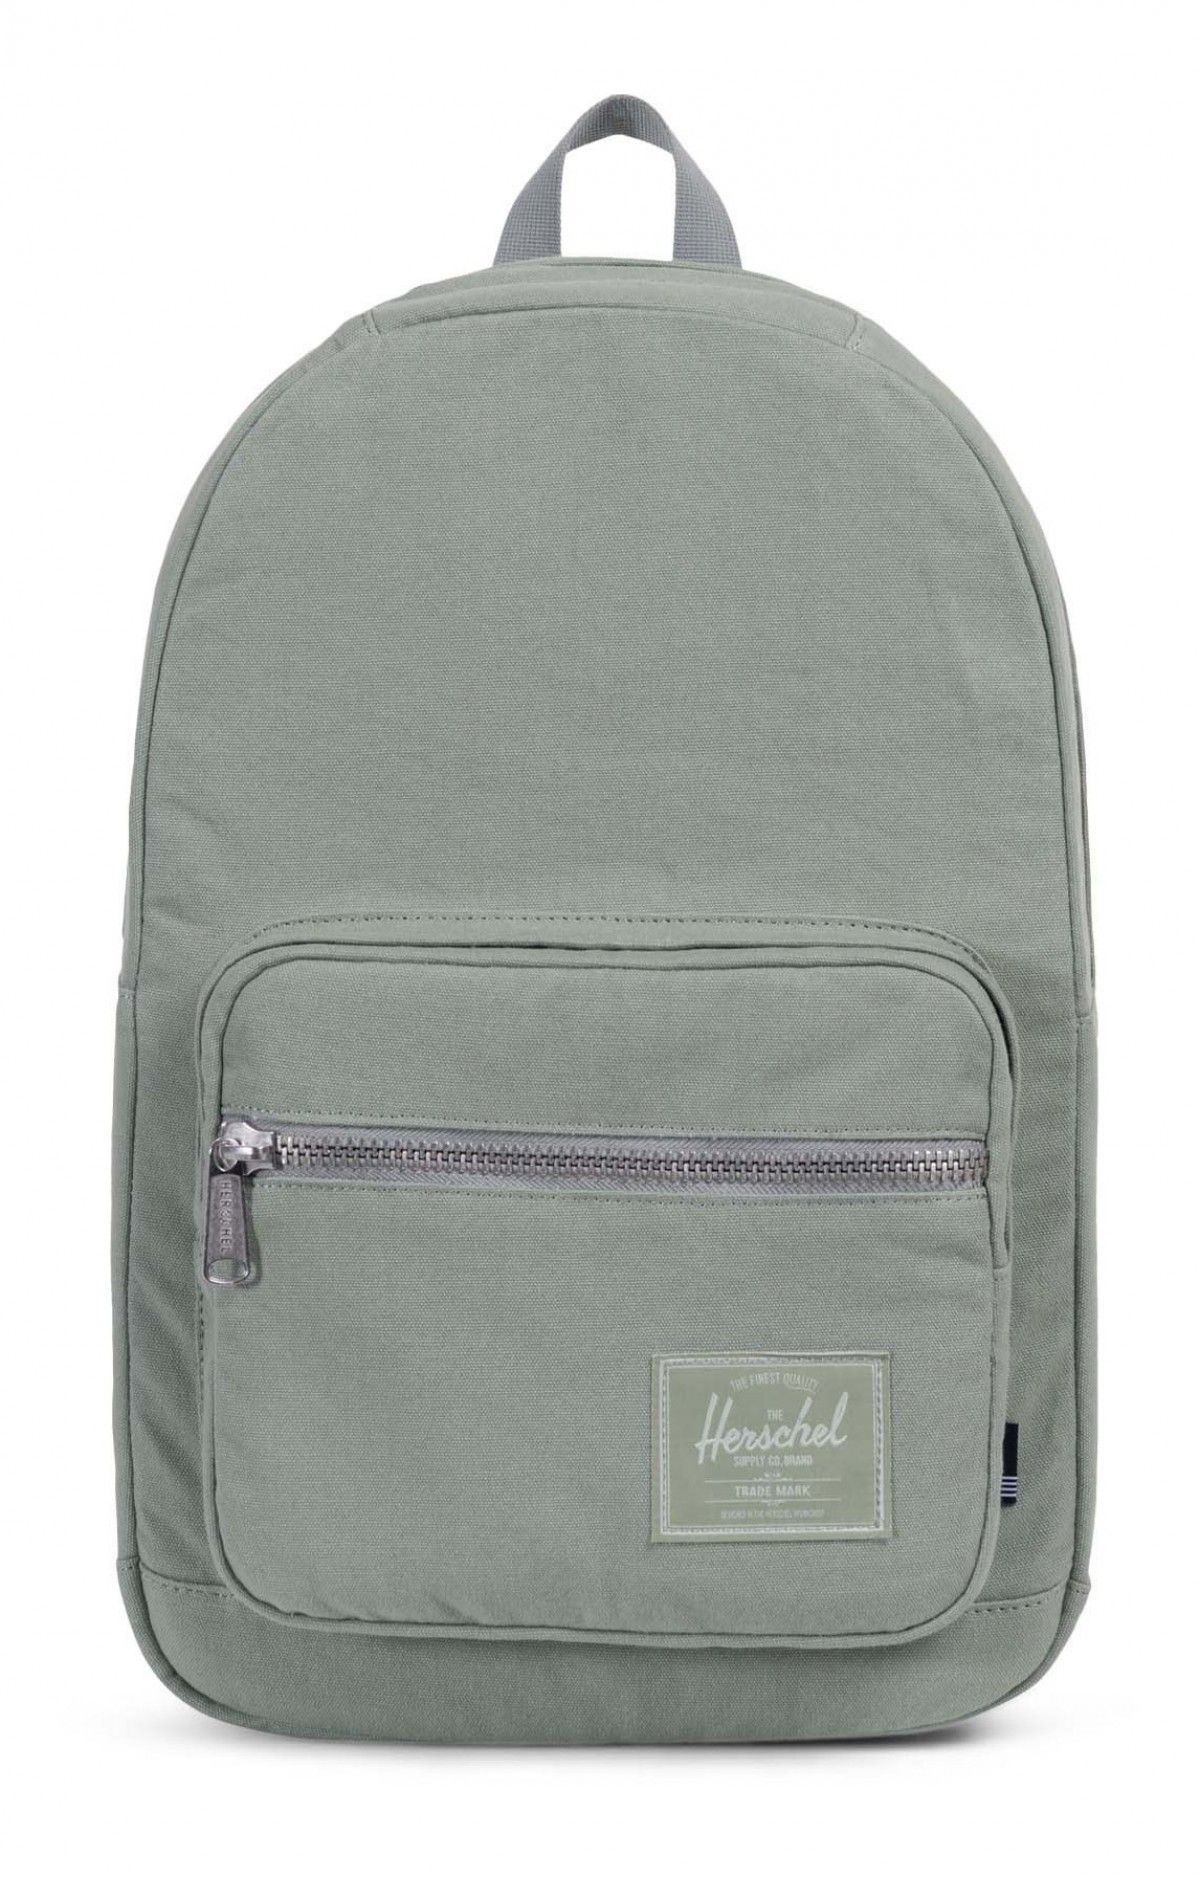 f8b8eed3d3b Herschel Pop Quiz Backpack Canvas Shadow